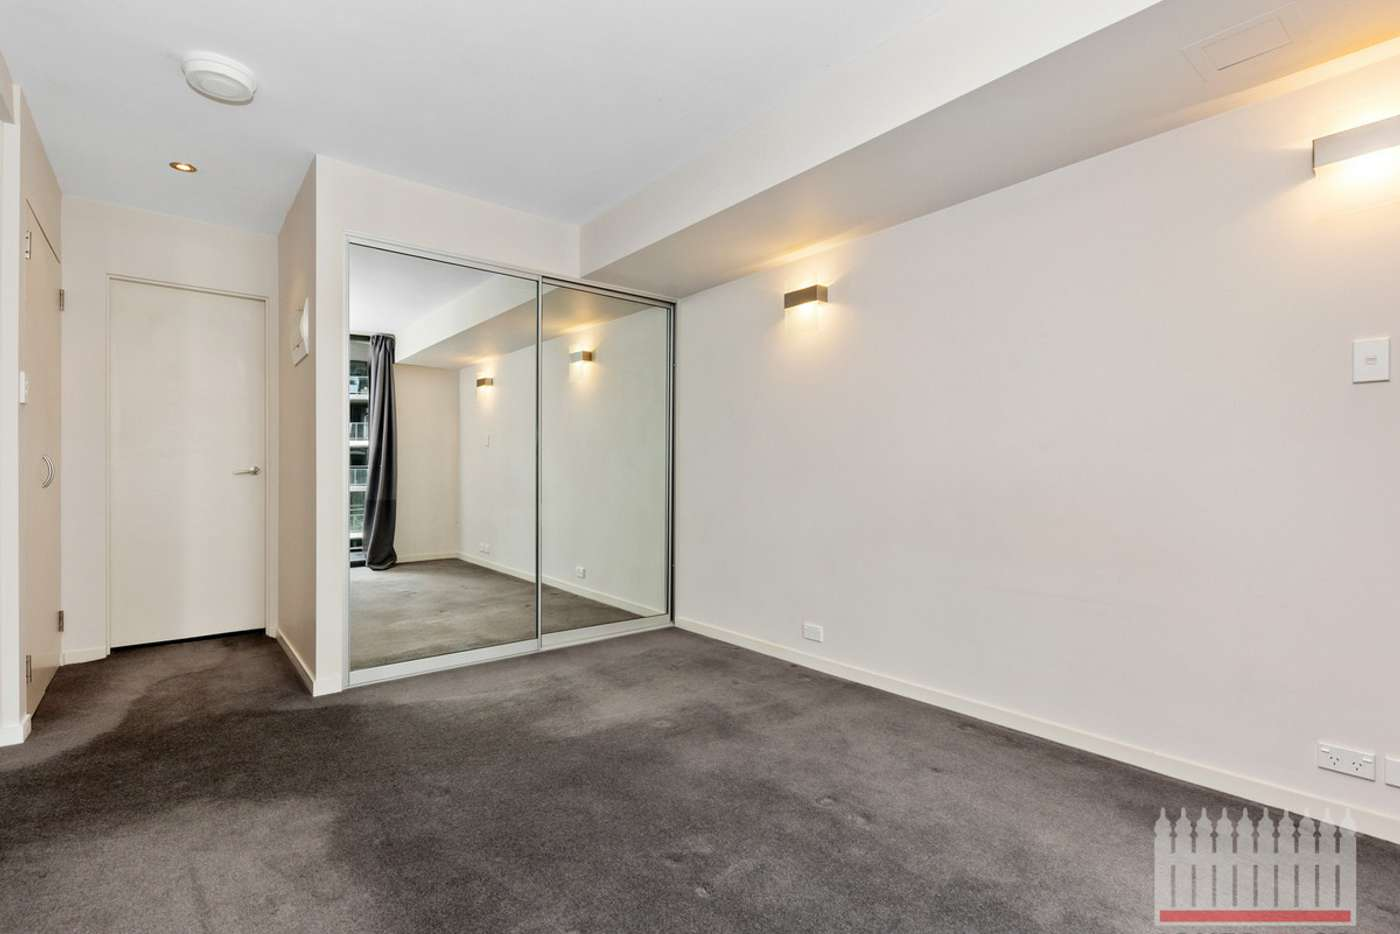 Sixth view of Homely apartment listing, 44/143 Adelaide Terrace, East Perth WA 6004